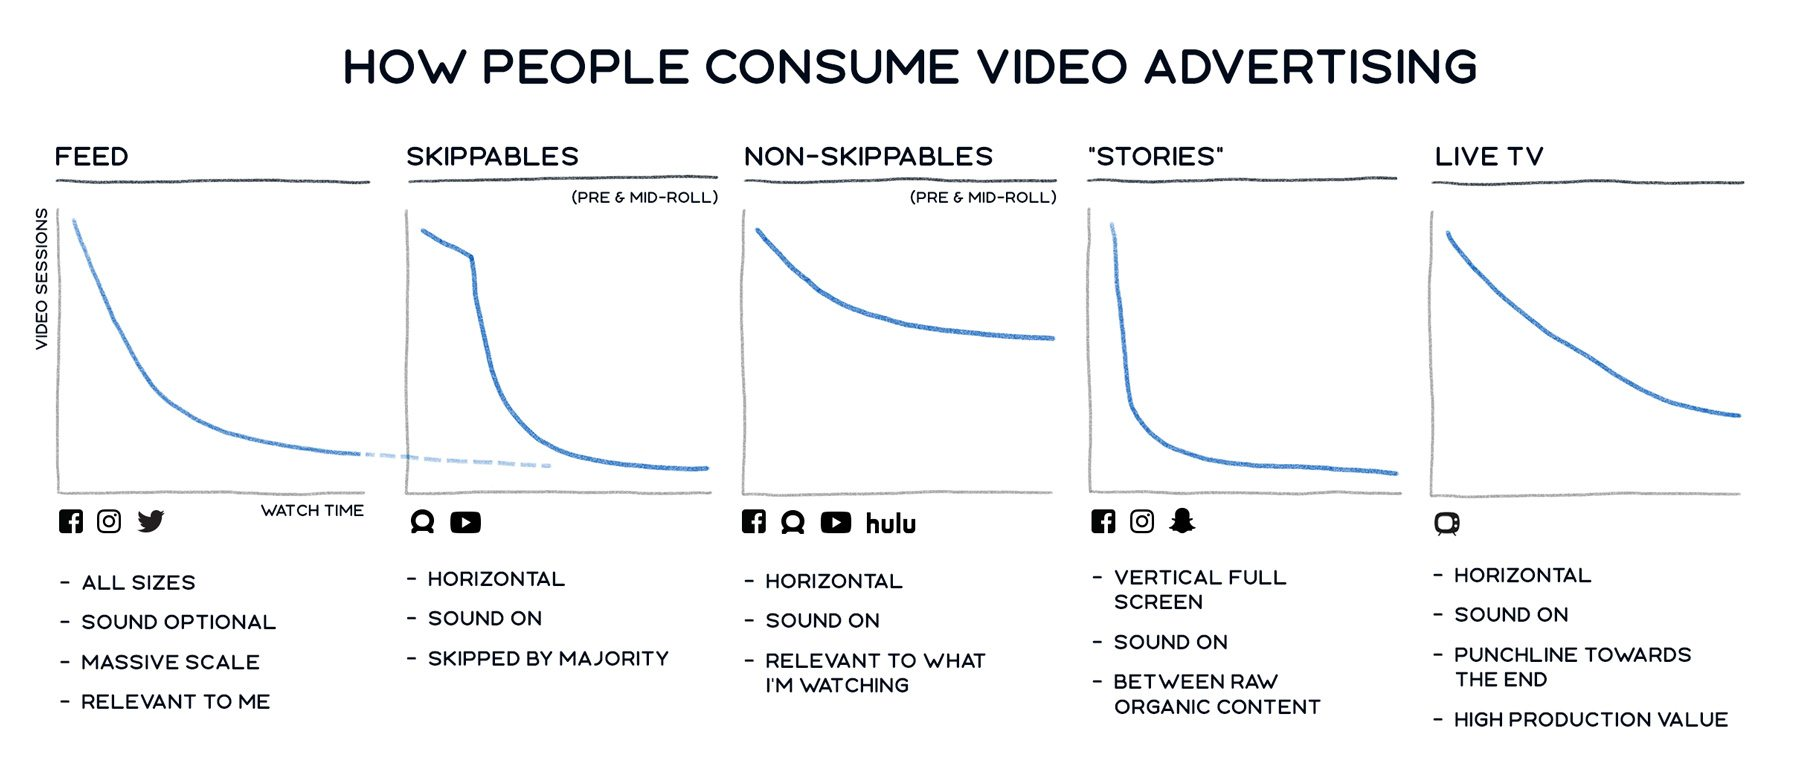 facebook-in-stream-video-ads-consumption